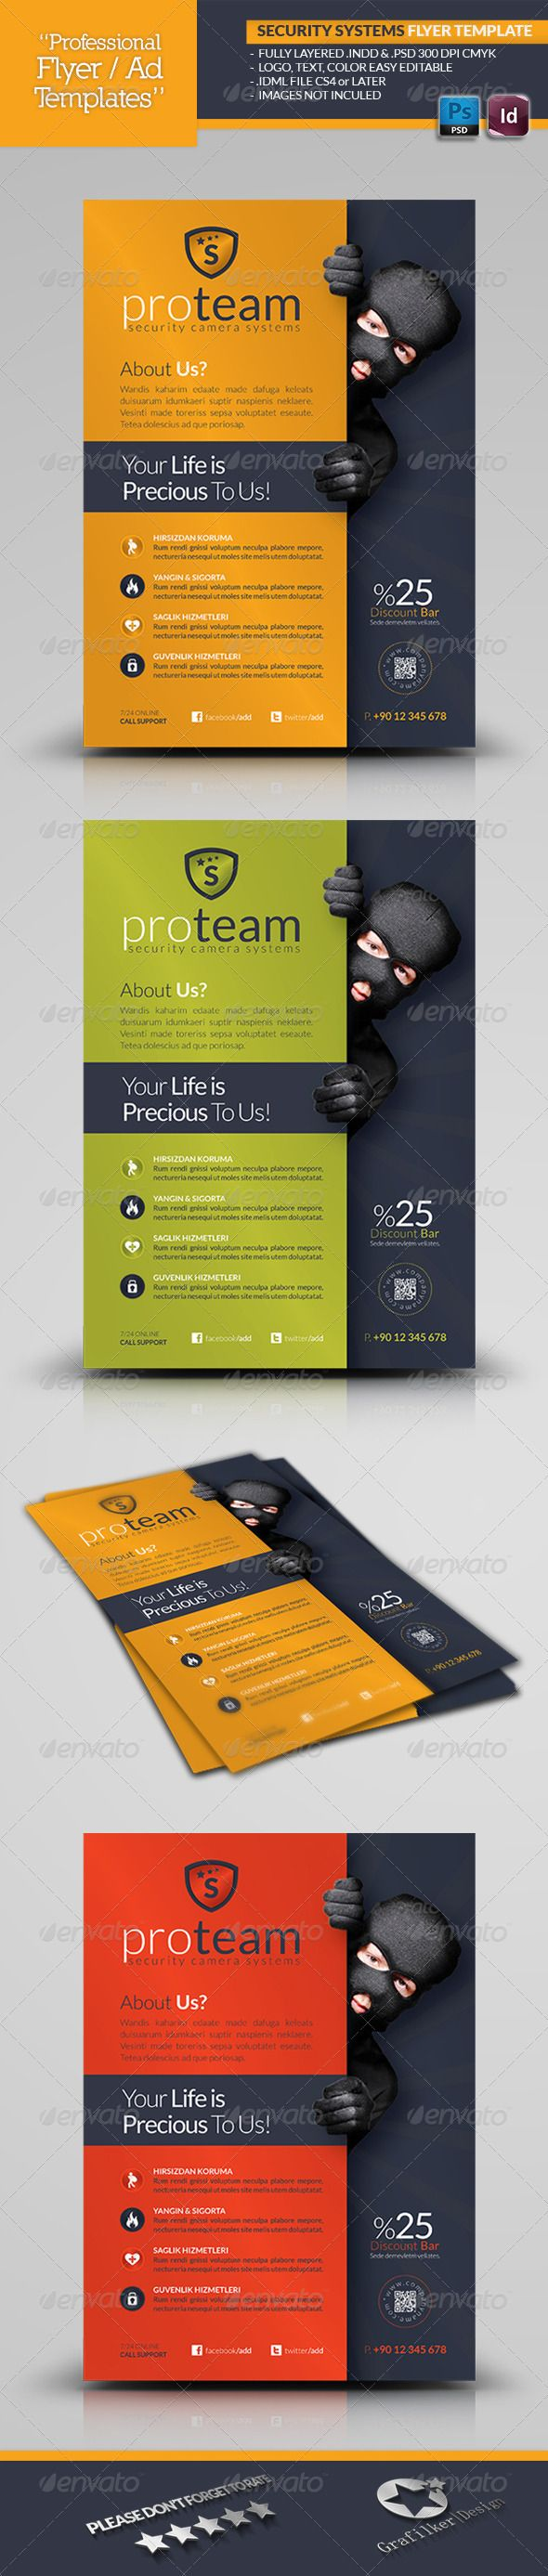 security systems flyer template bodyguard burglary cars security systems flyer template bodyguard burglary cars emergency fire